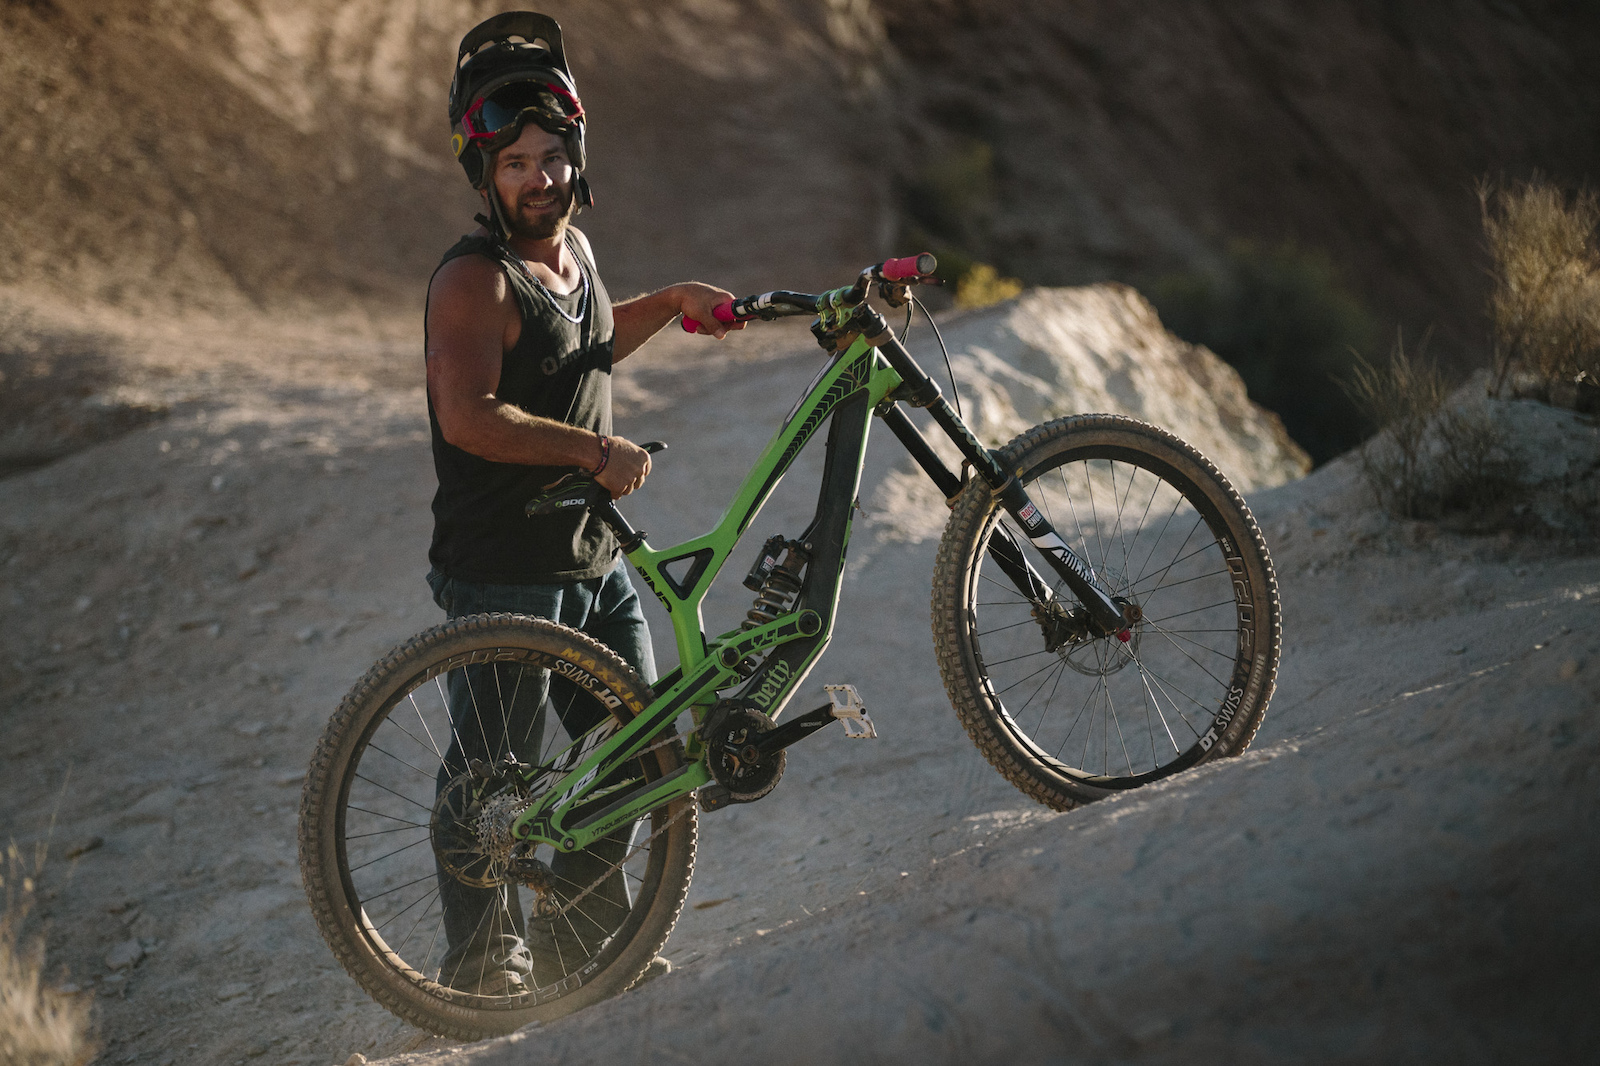 Robbie Bourden at RedBull Rampage 2015 Virgin Utah USA